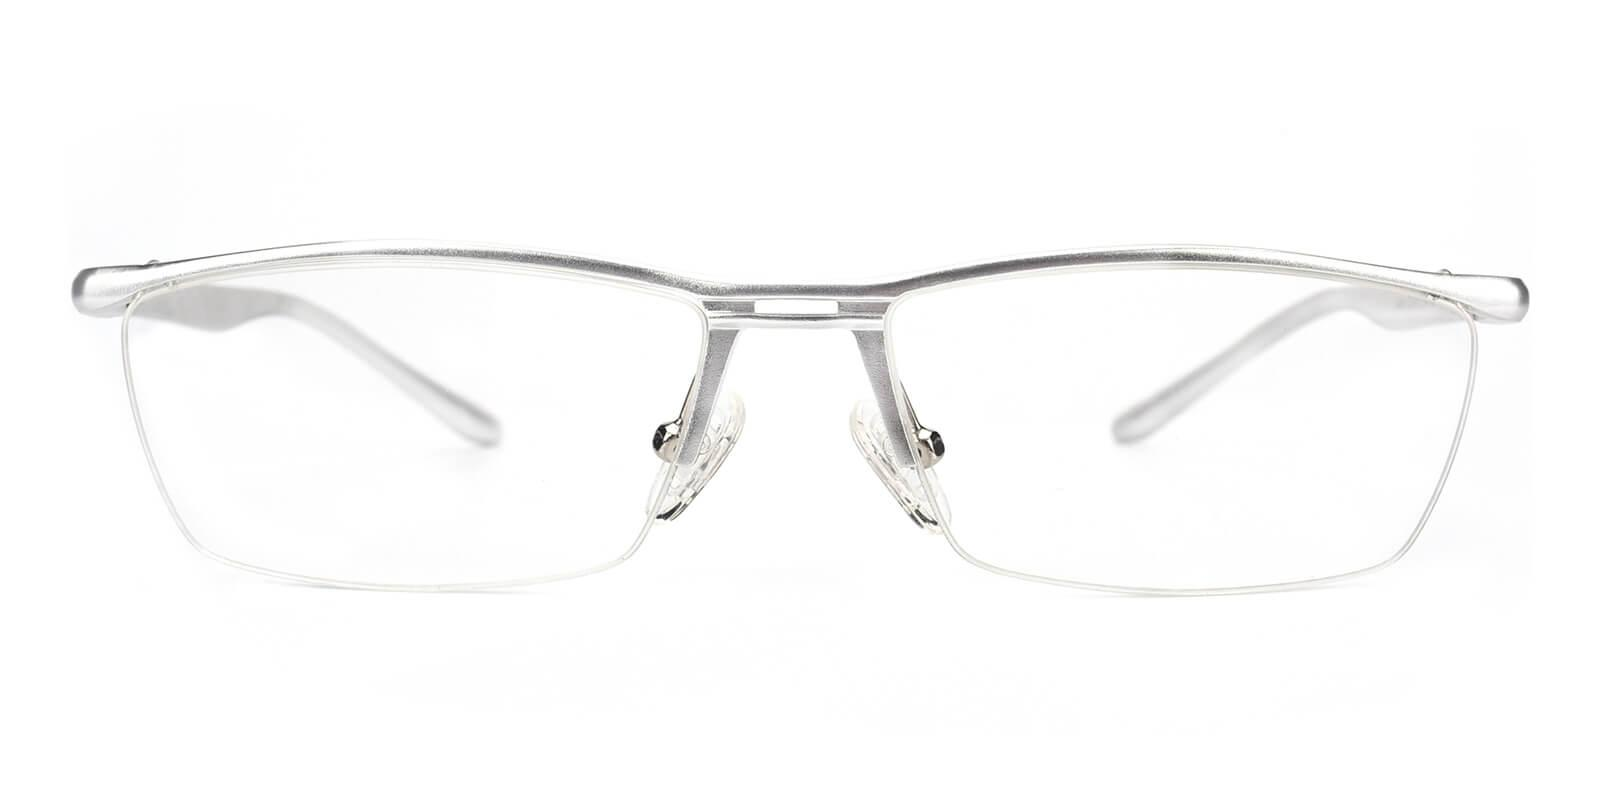 Vauseper-Silver-Rectangle-Metal-Eyeglasses-additional2